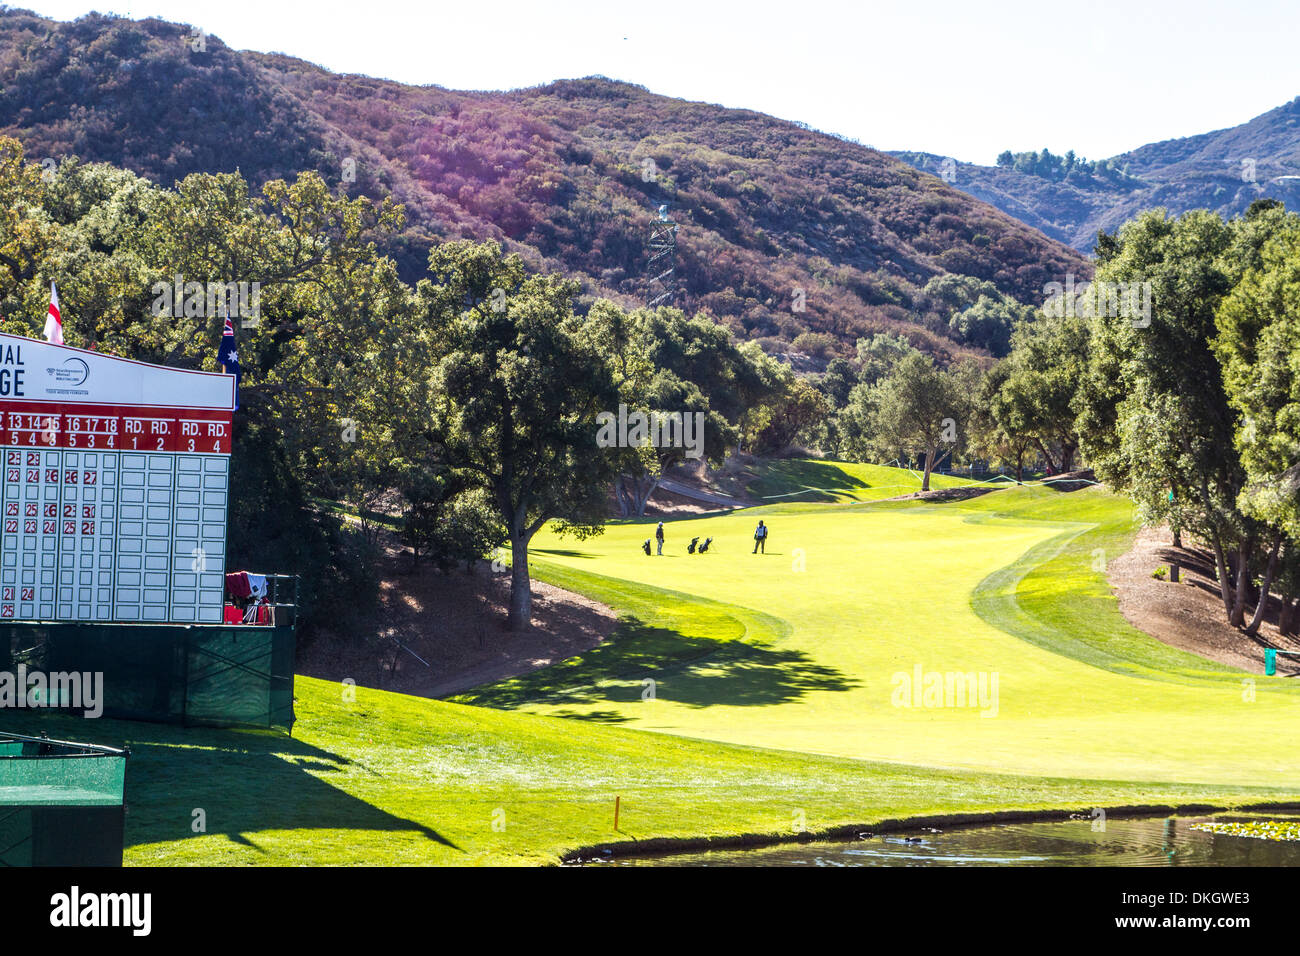 The 18th Hole 2013 Northwestern Mutual Challenge at Sherwood Country Club in Thousand Oaks California - Stock Image